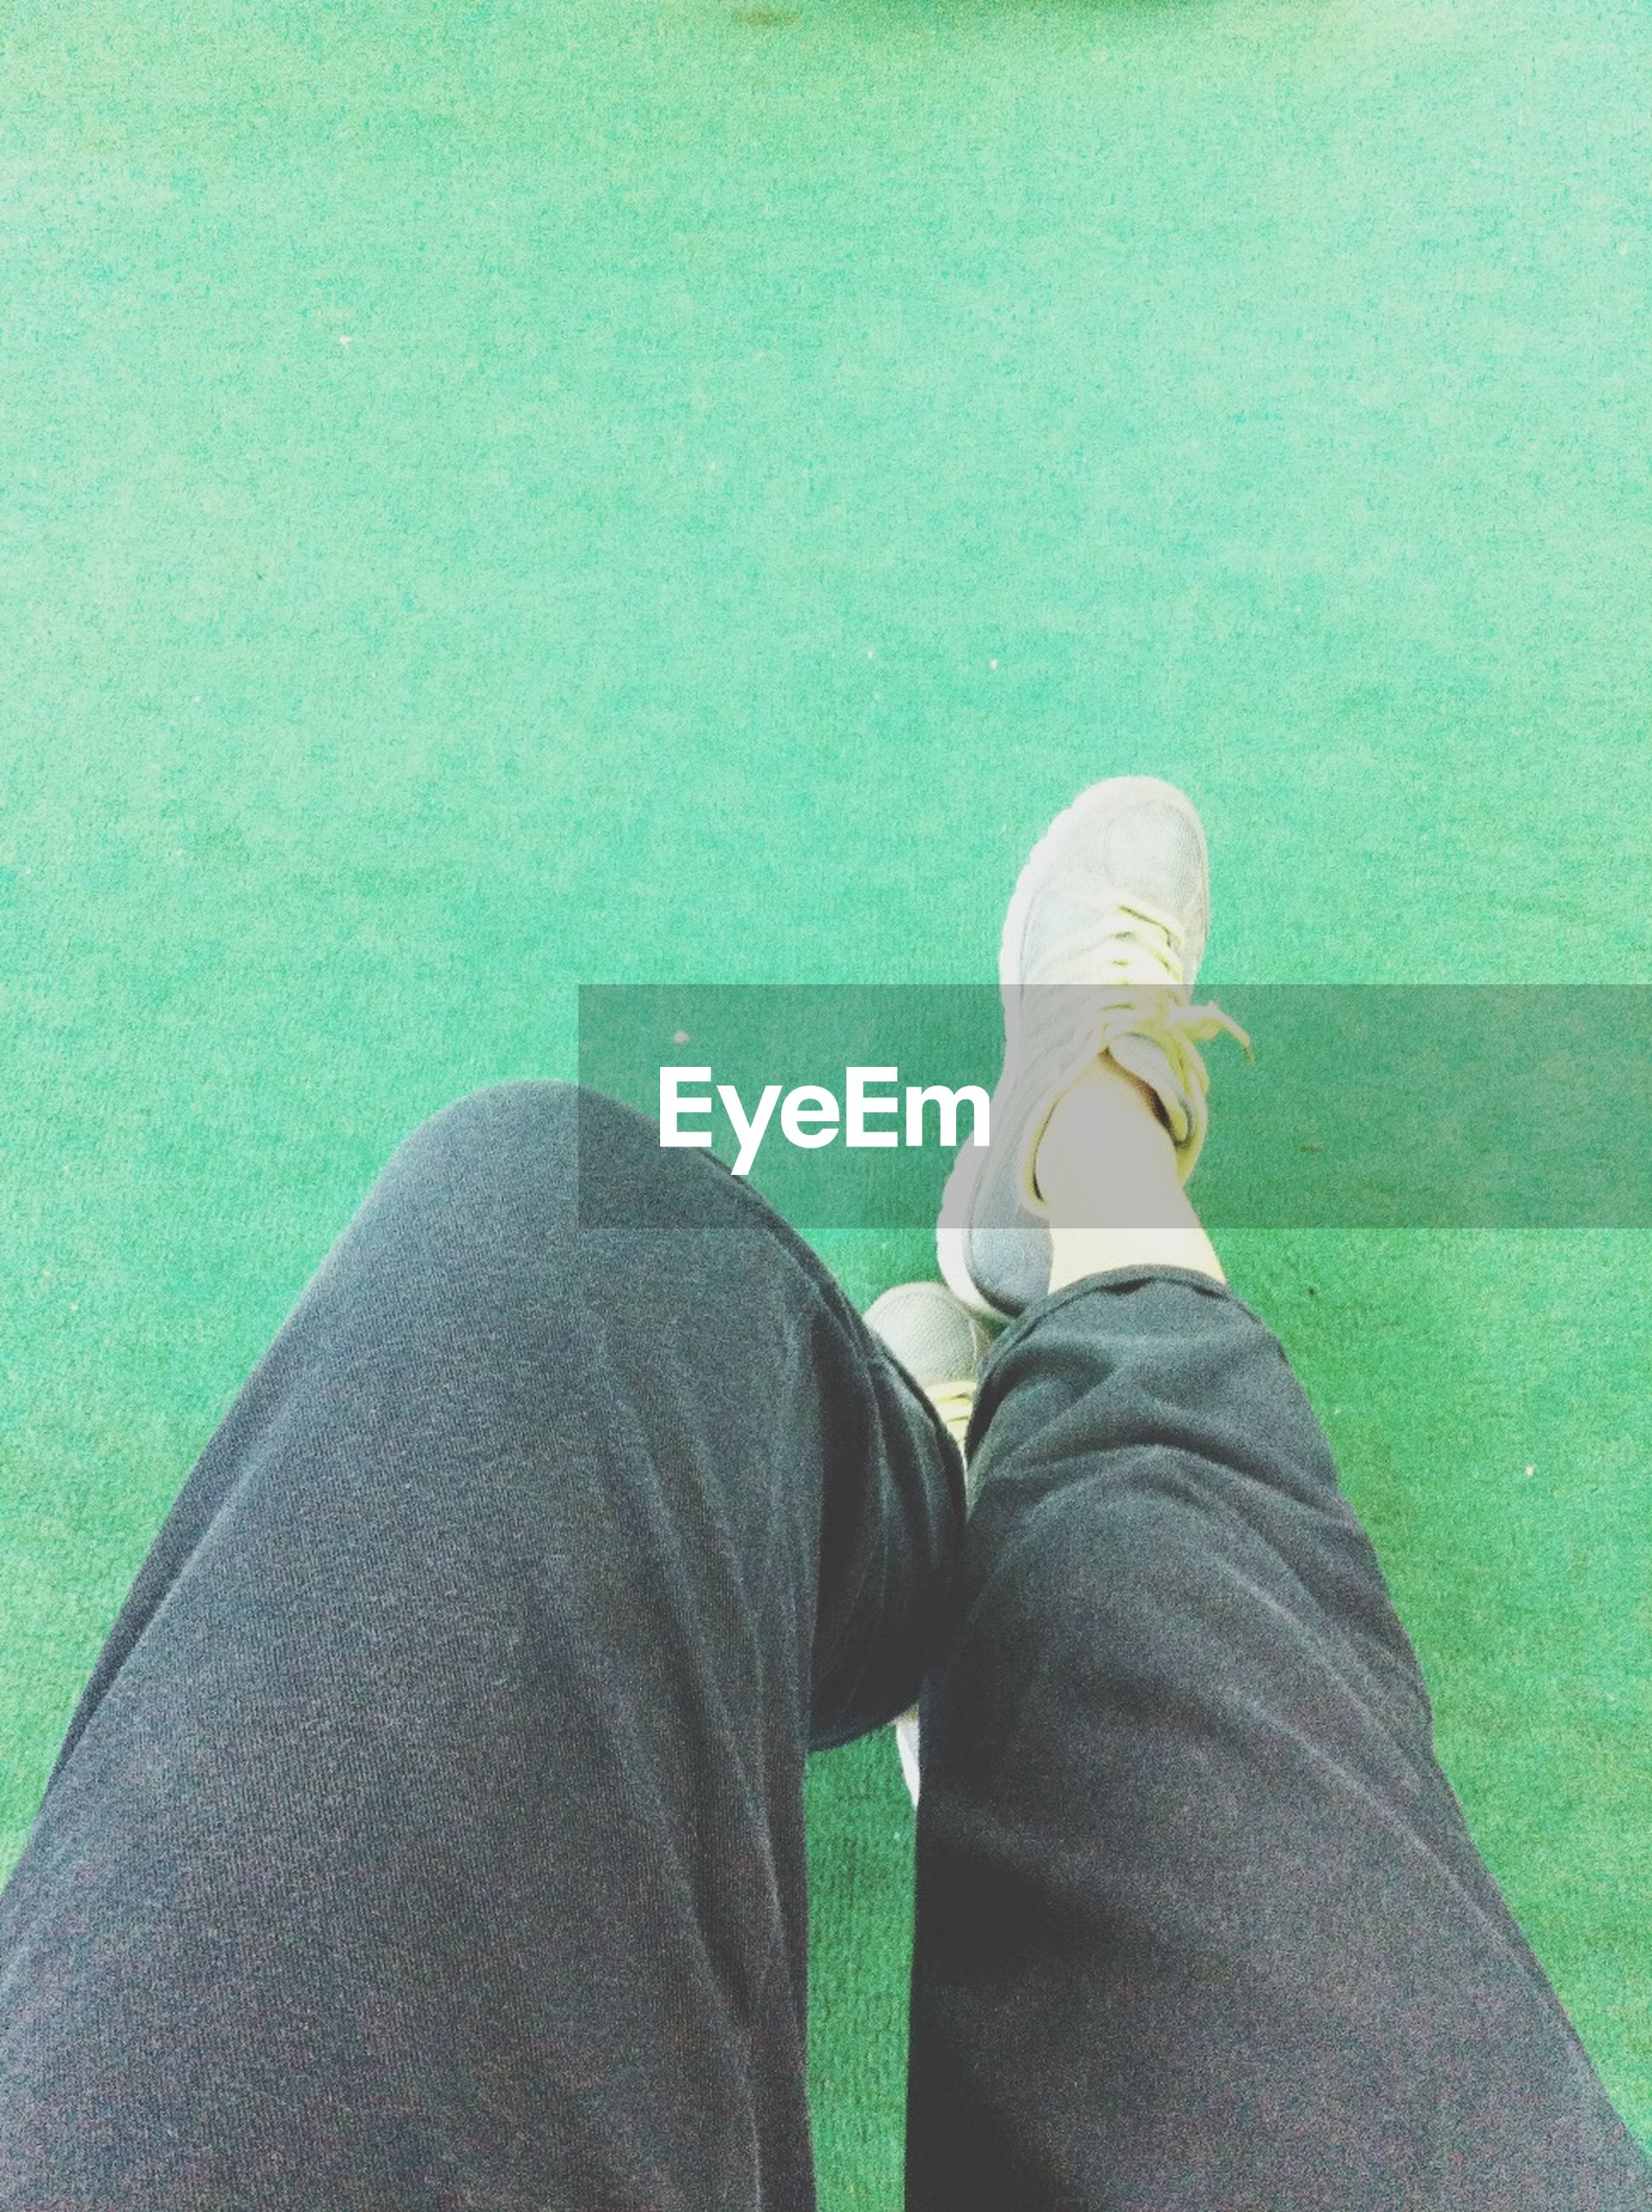 lifestyles, indoors, copy space, low section, leisure activity, men, person, casual clothing, part of, green color, shoe, personal perspective, high angle view, close-up, blue